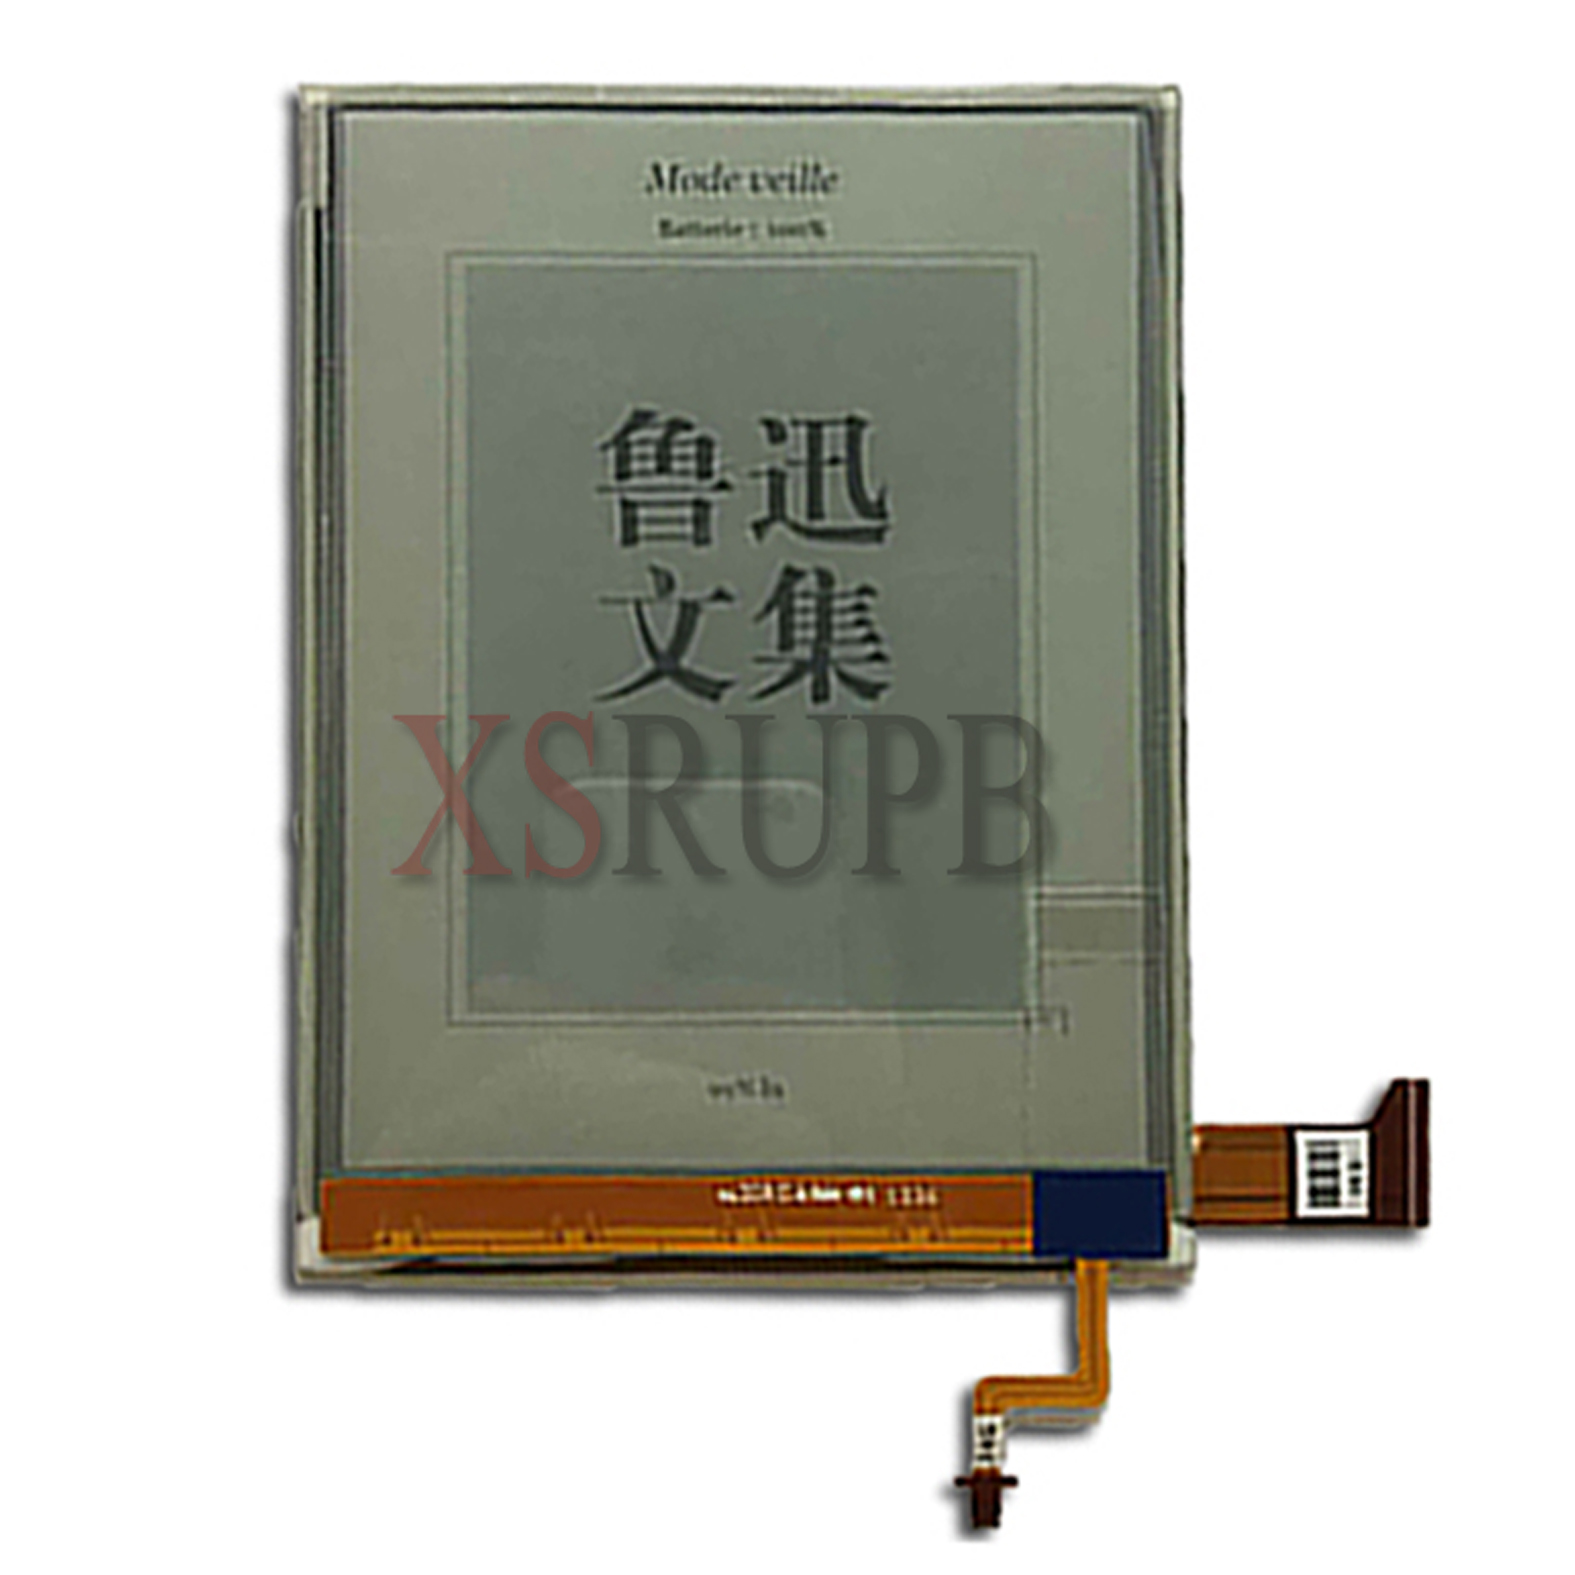 100% original 6 HD E-INK lcd screen With backlight for ONYX BOOX i63SML E-book readers LCD display original 6 inch touch screen lcd display for onyx boox c63l onyx boox c63ml magellan e book free shipping